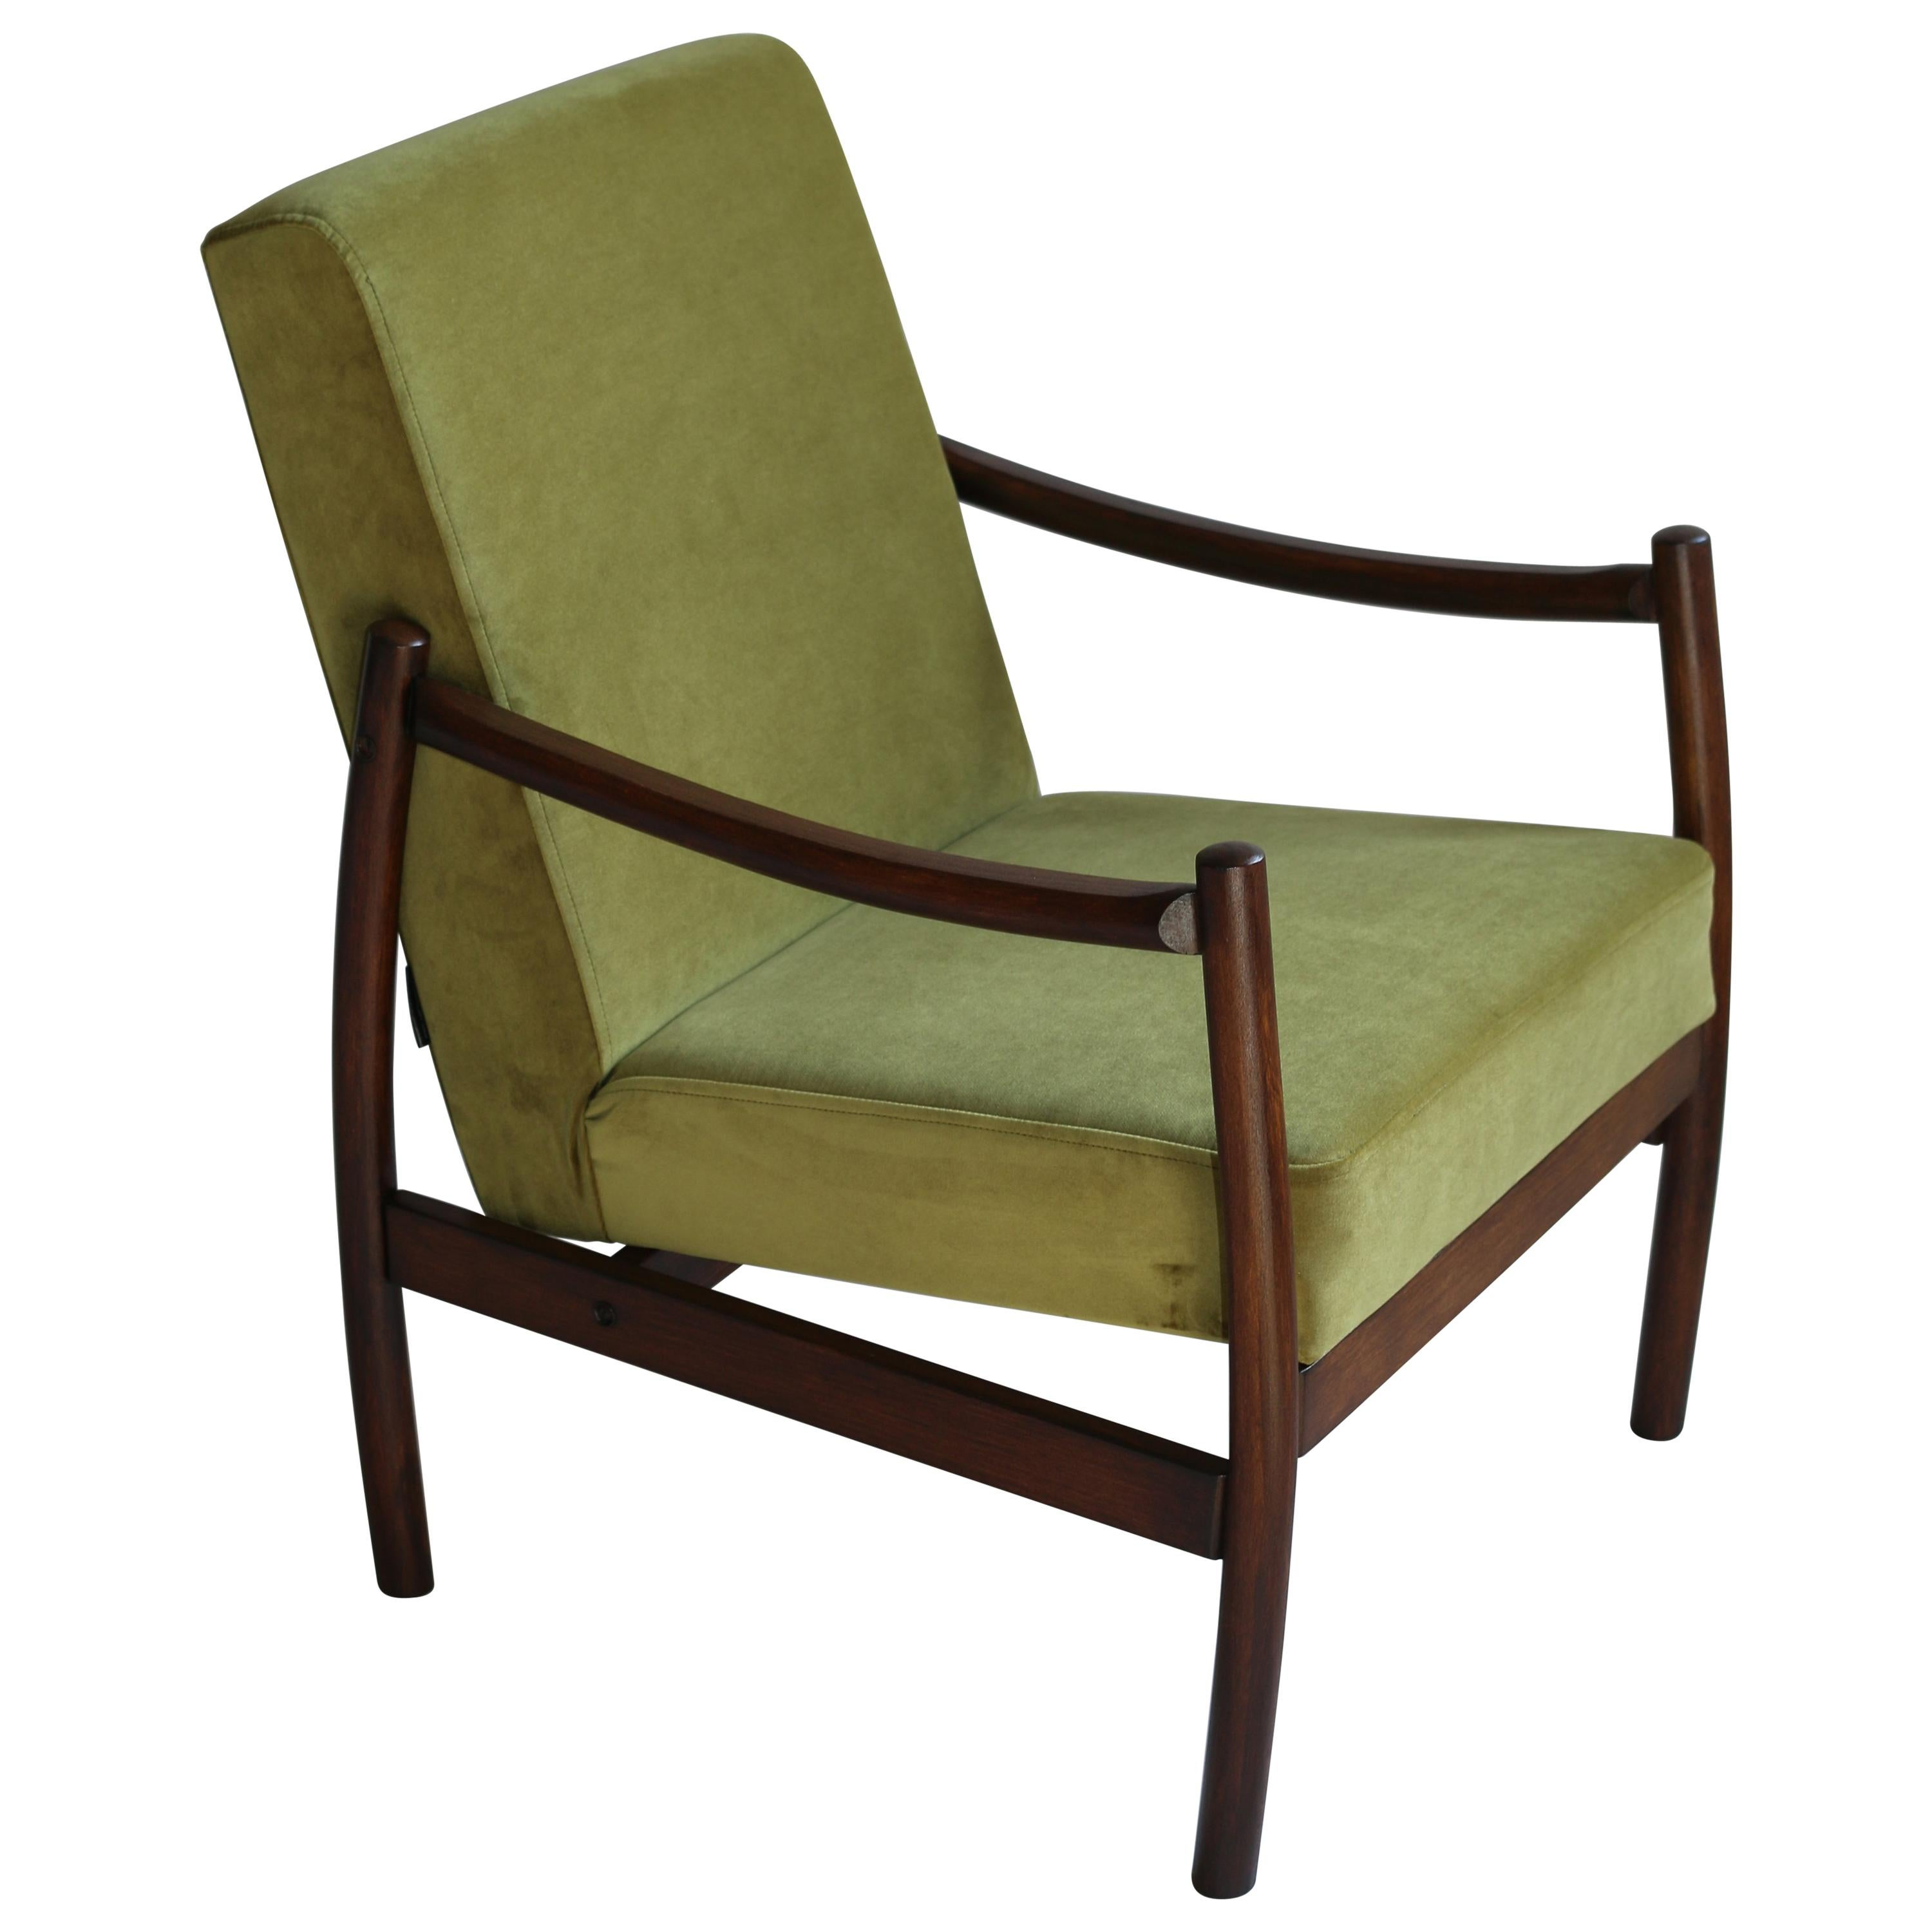 Polish Vintage Armchairs In Green Velvet From 1970s For Sale